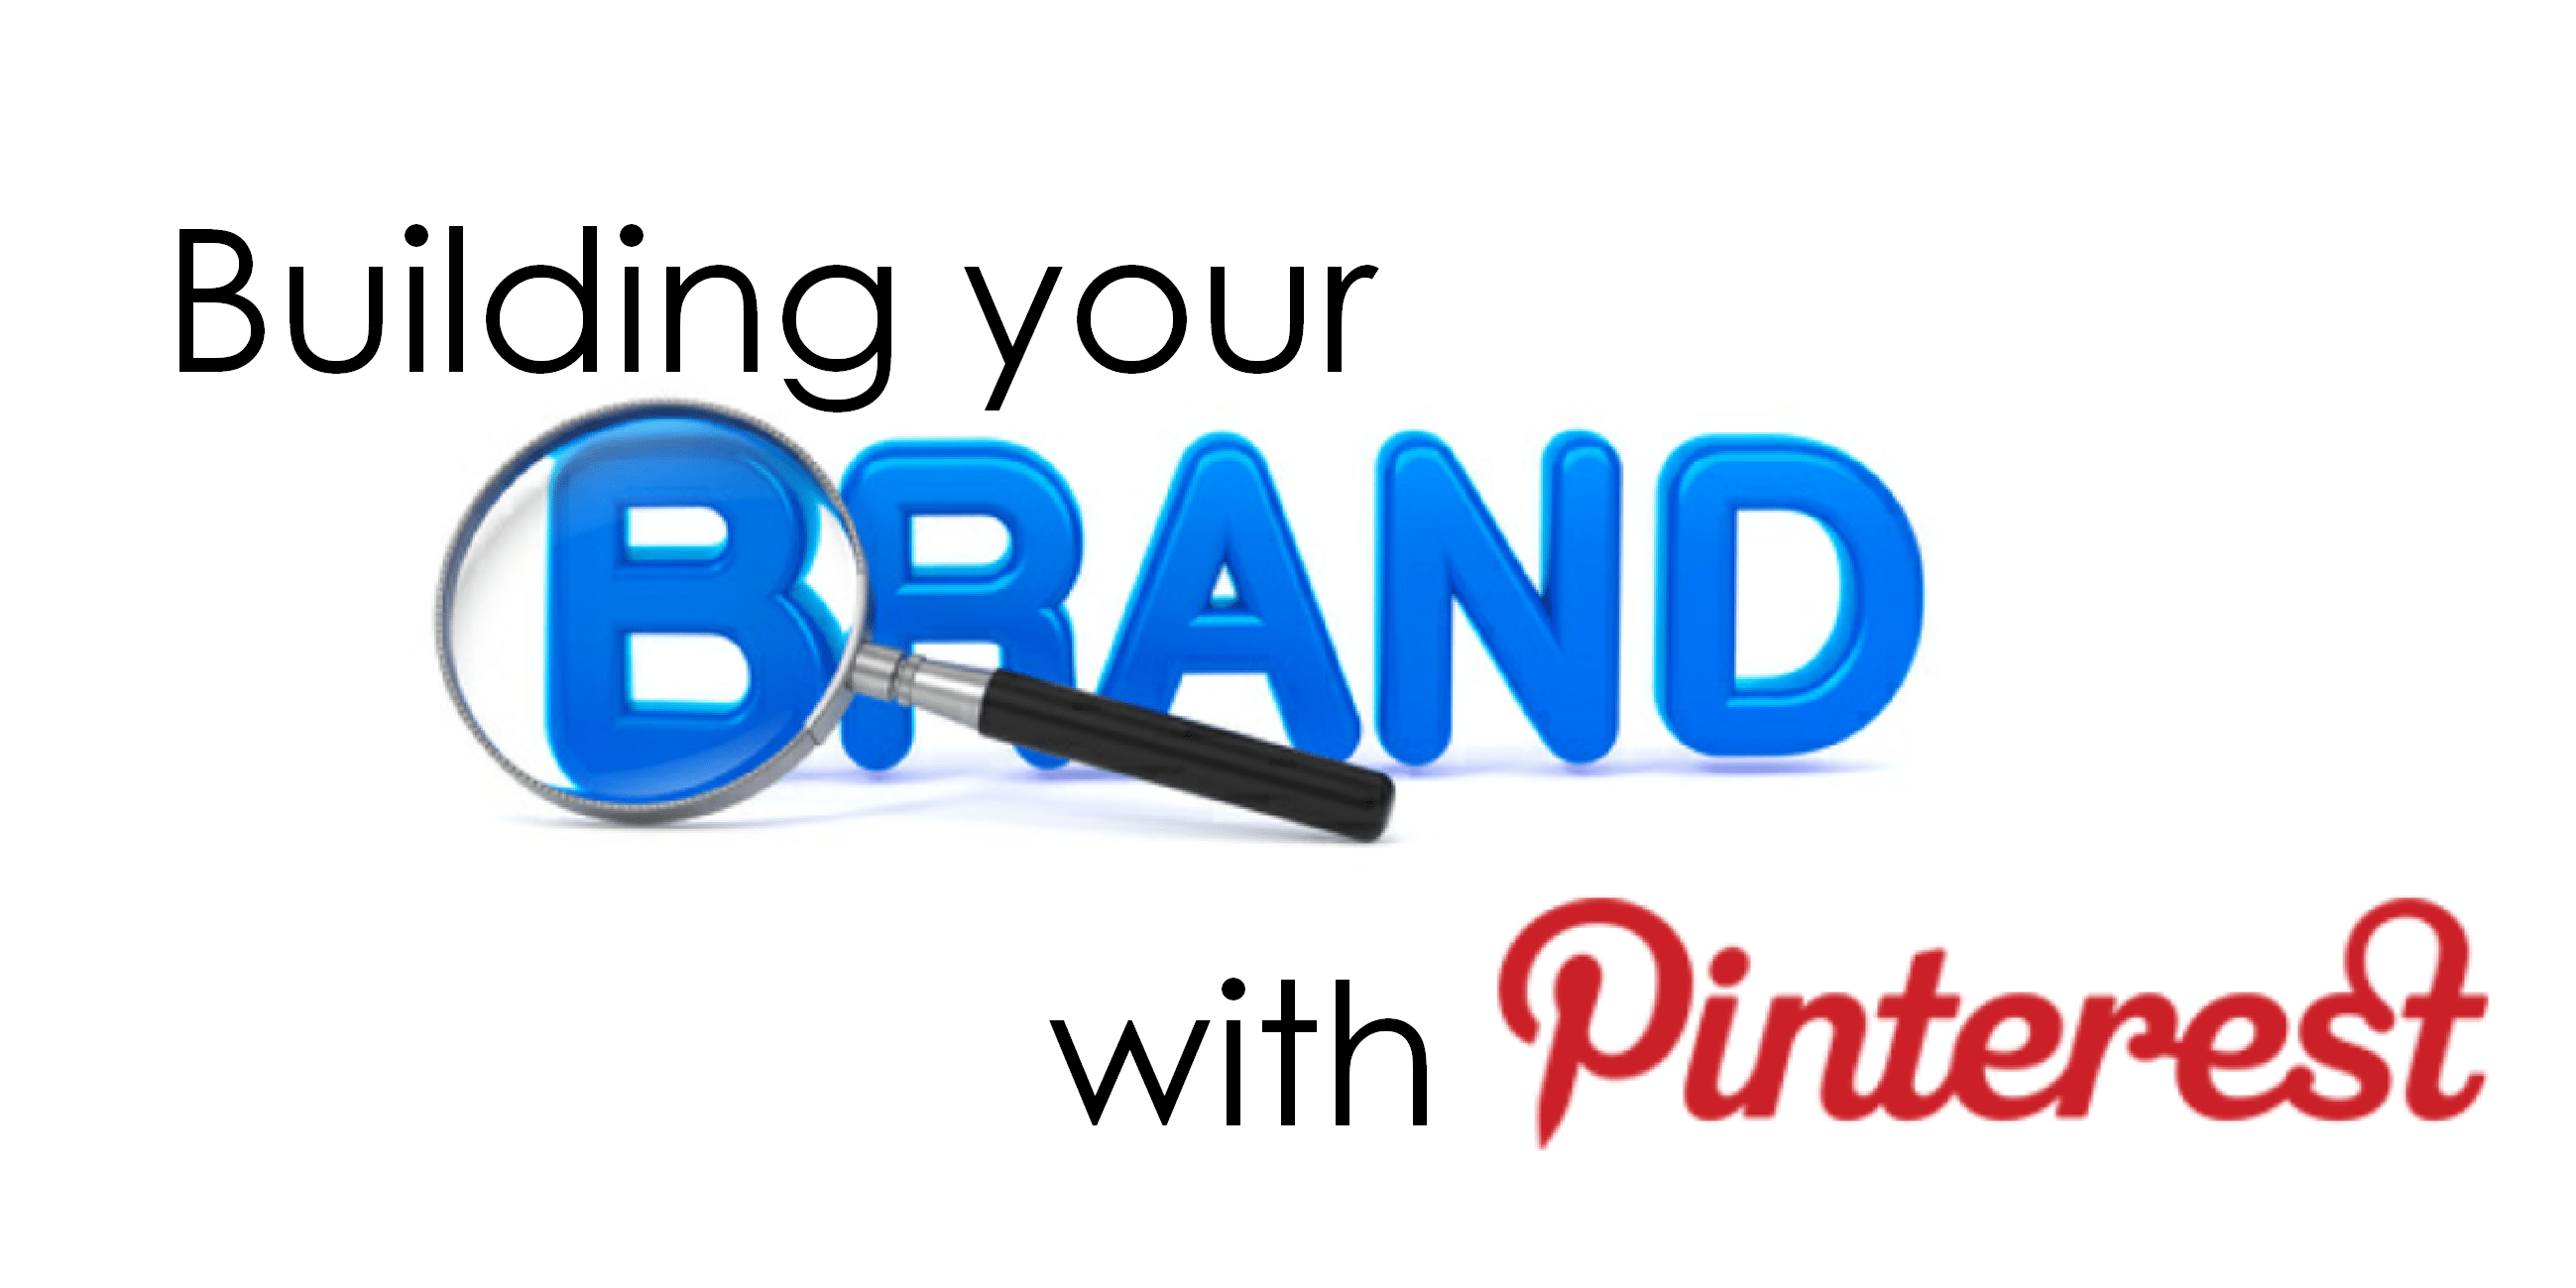 building your brand martin reynolds view larger image image of the cover photo for building your brand article by martin reynolds